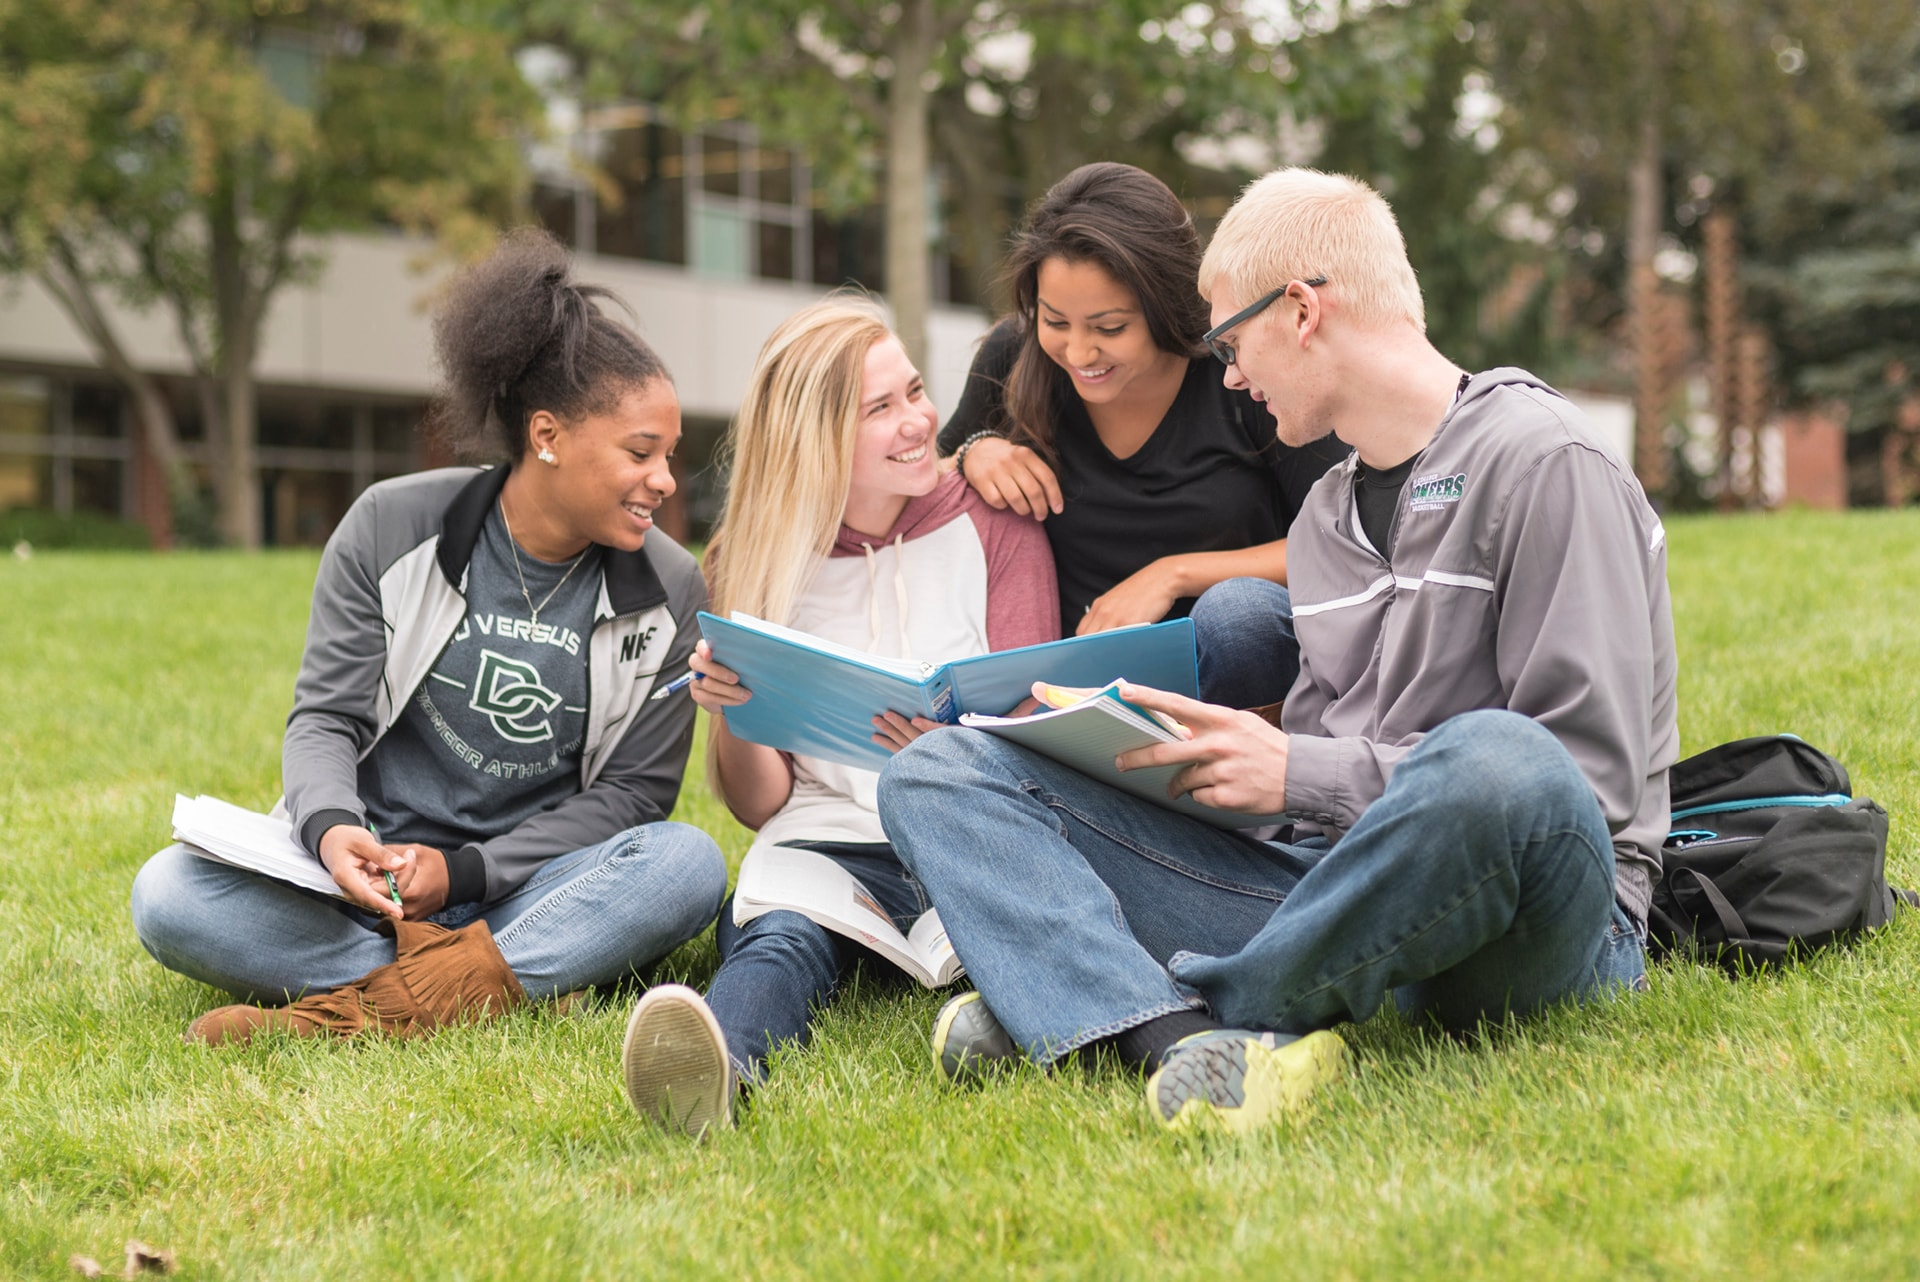 Group of students studying in courtyard